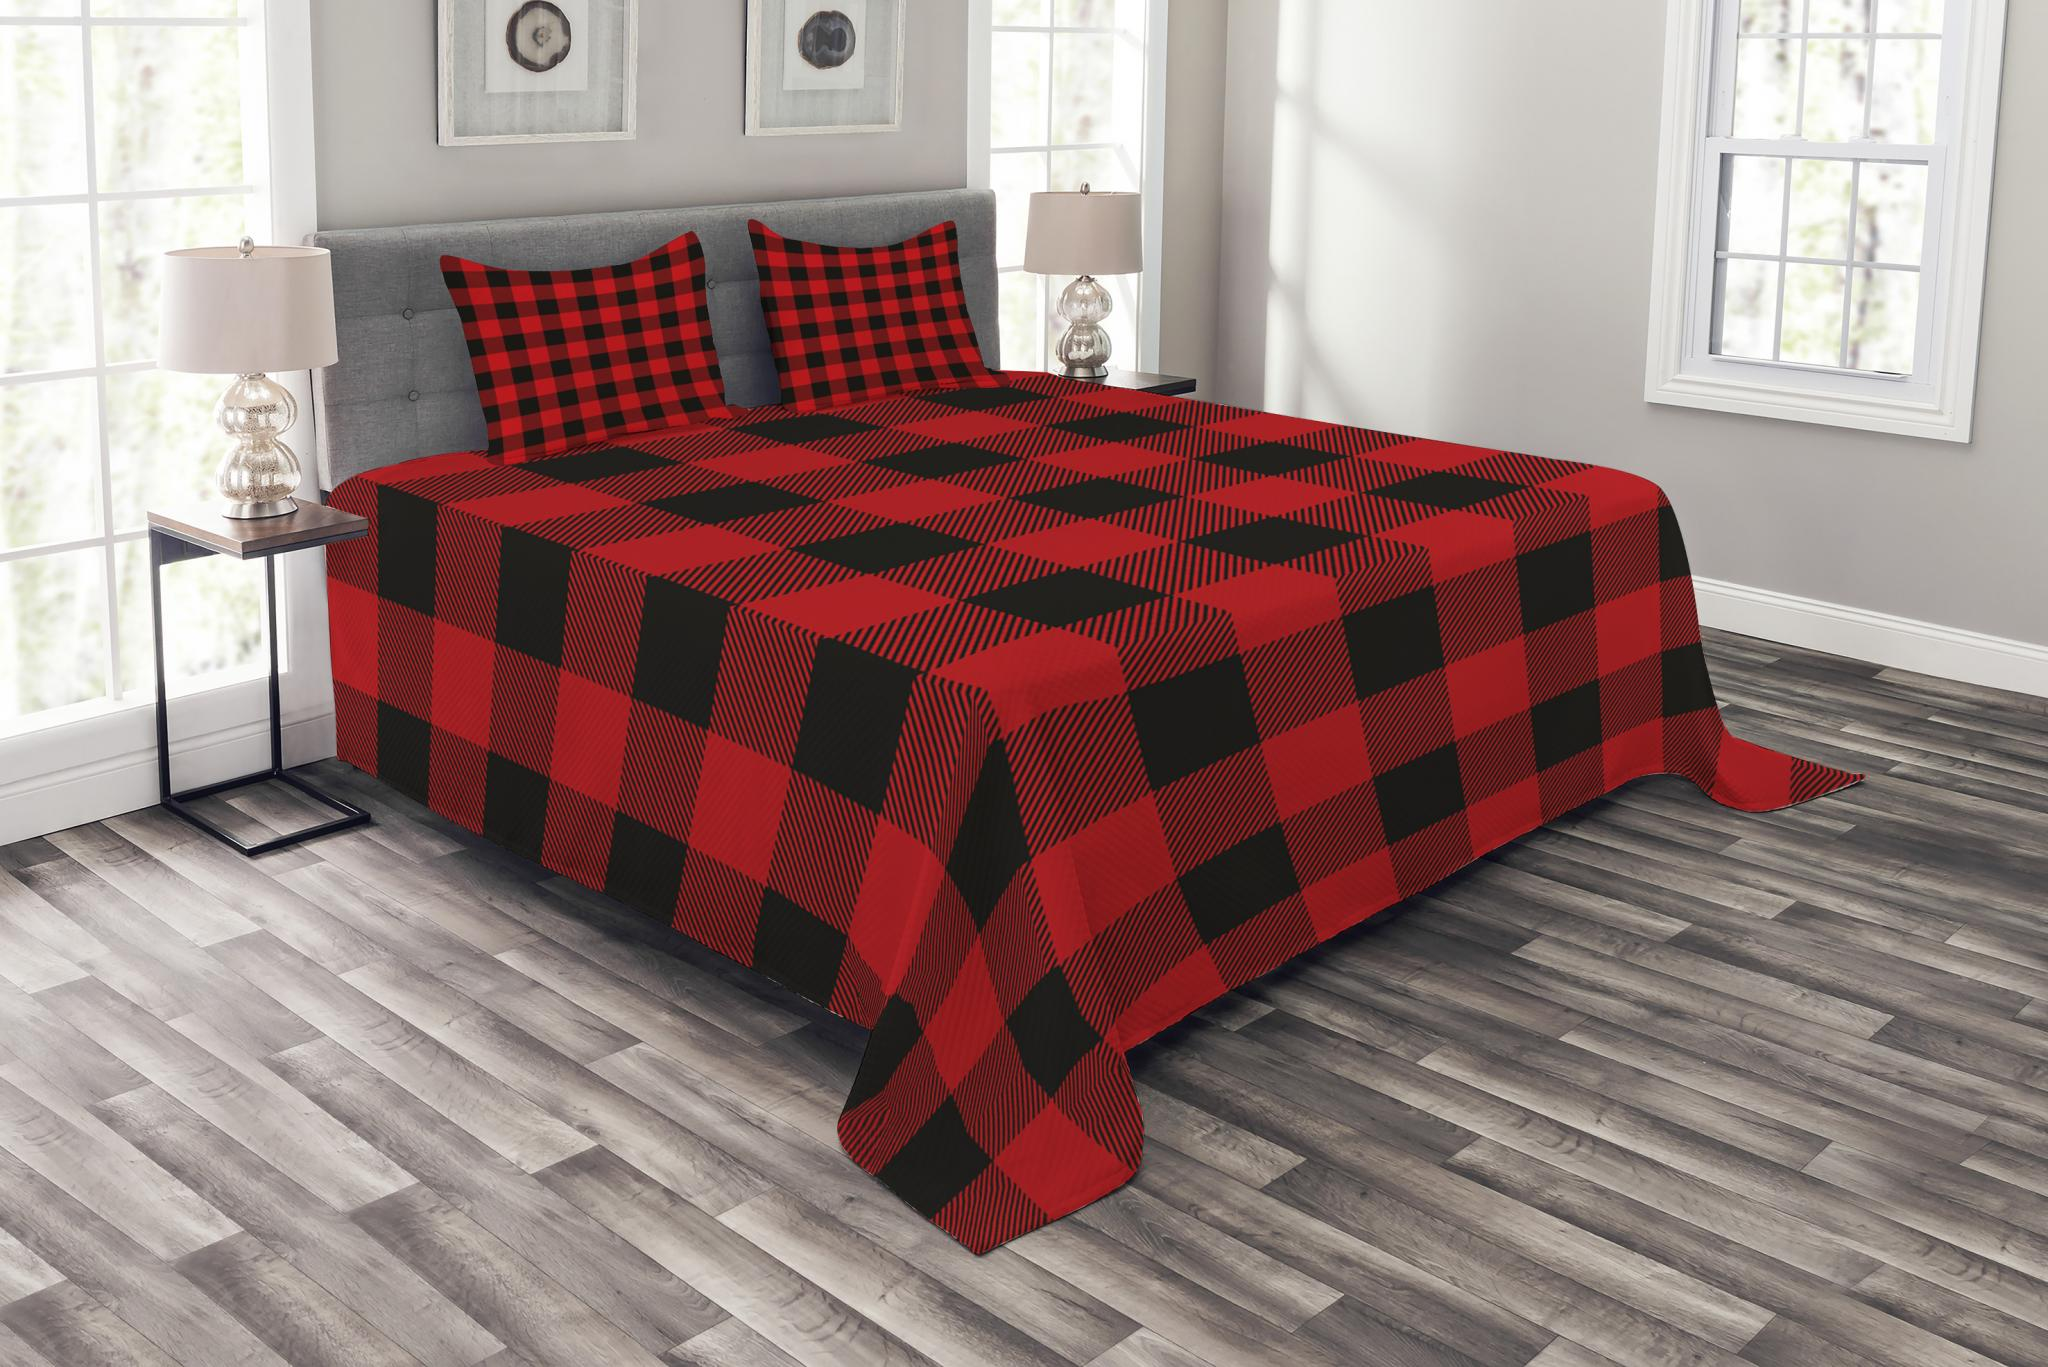 Red and black bed spread